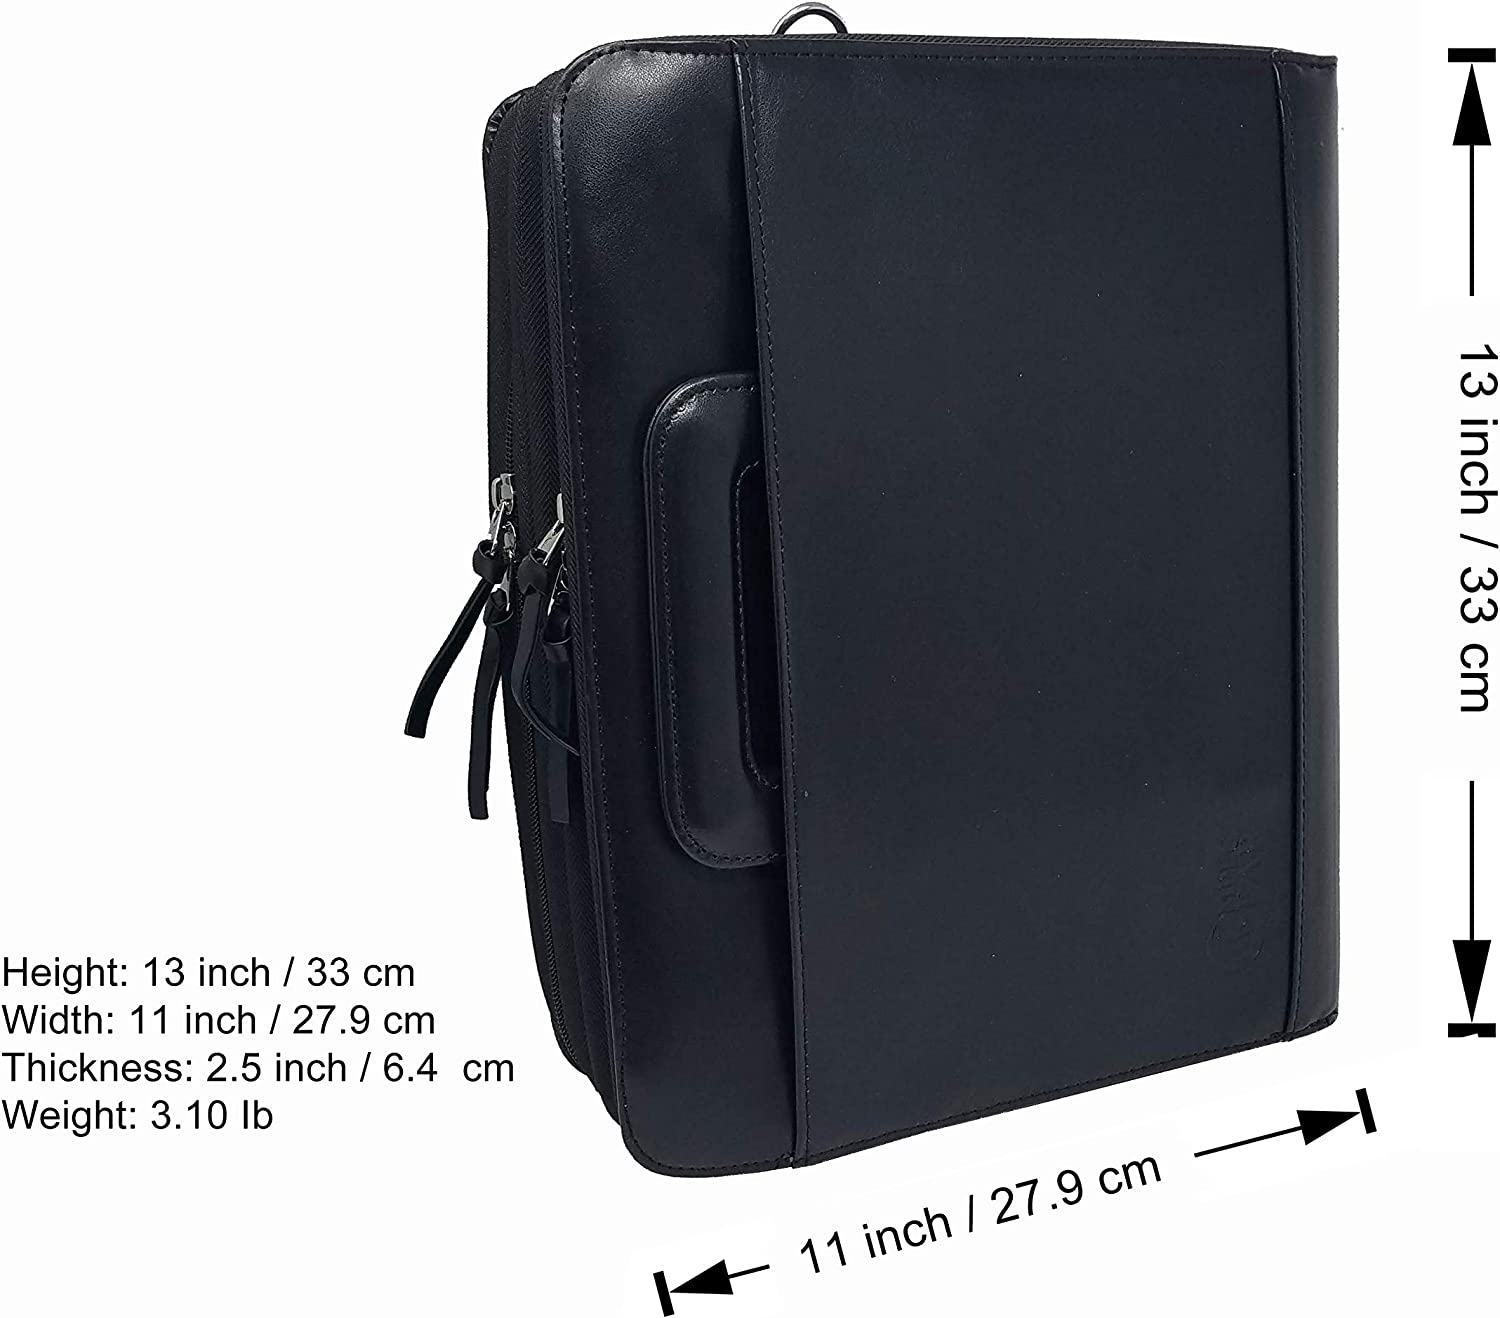 Folder File Divider Organizer Planner Trave Briefcase Portfolio w//Smart Handle /& Double Zippered Closure Padfolio 3-Ring Binders -DC3063 Upgraded-Faux Leather Black